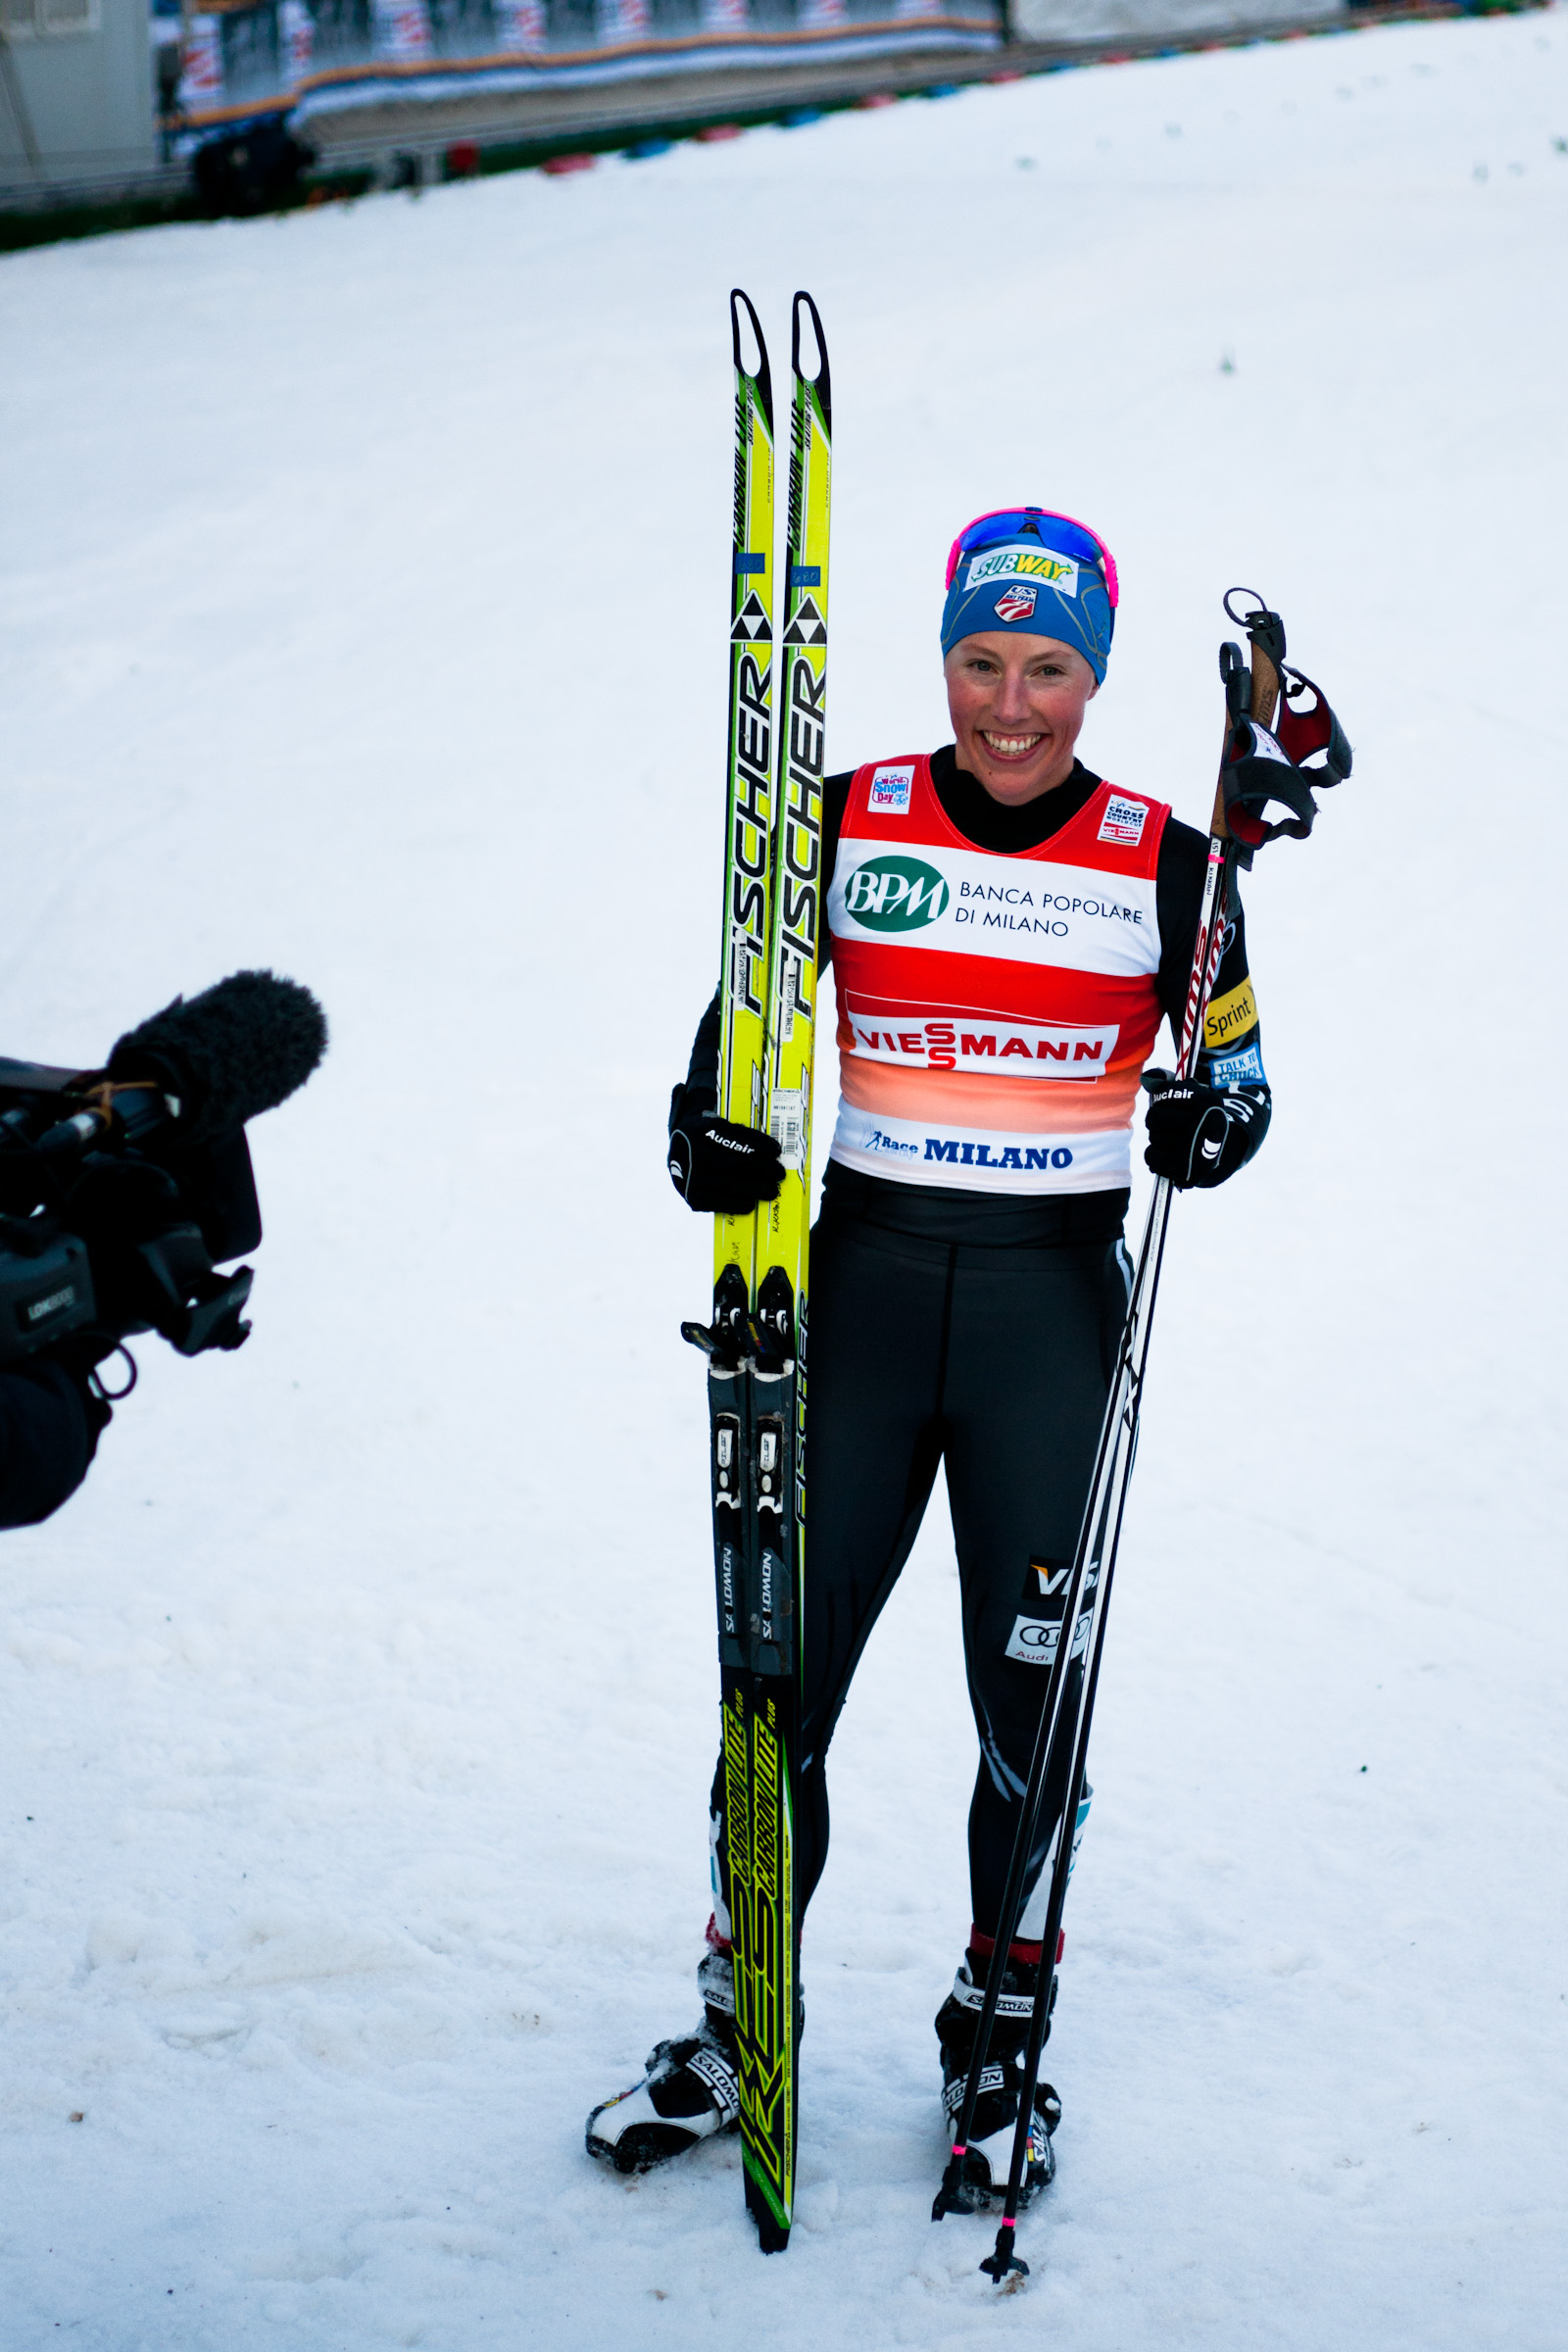 Kikkan Randall (USA) placed 2nd